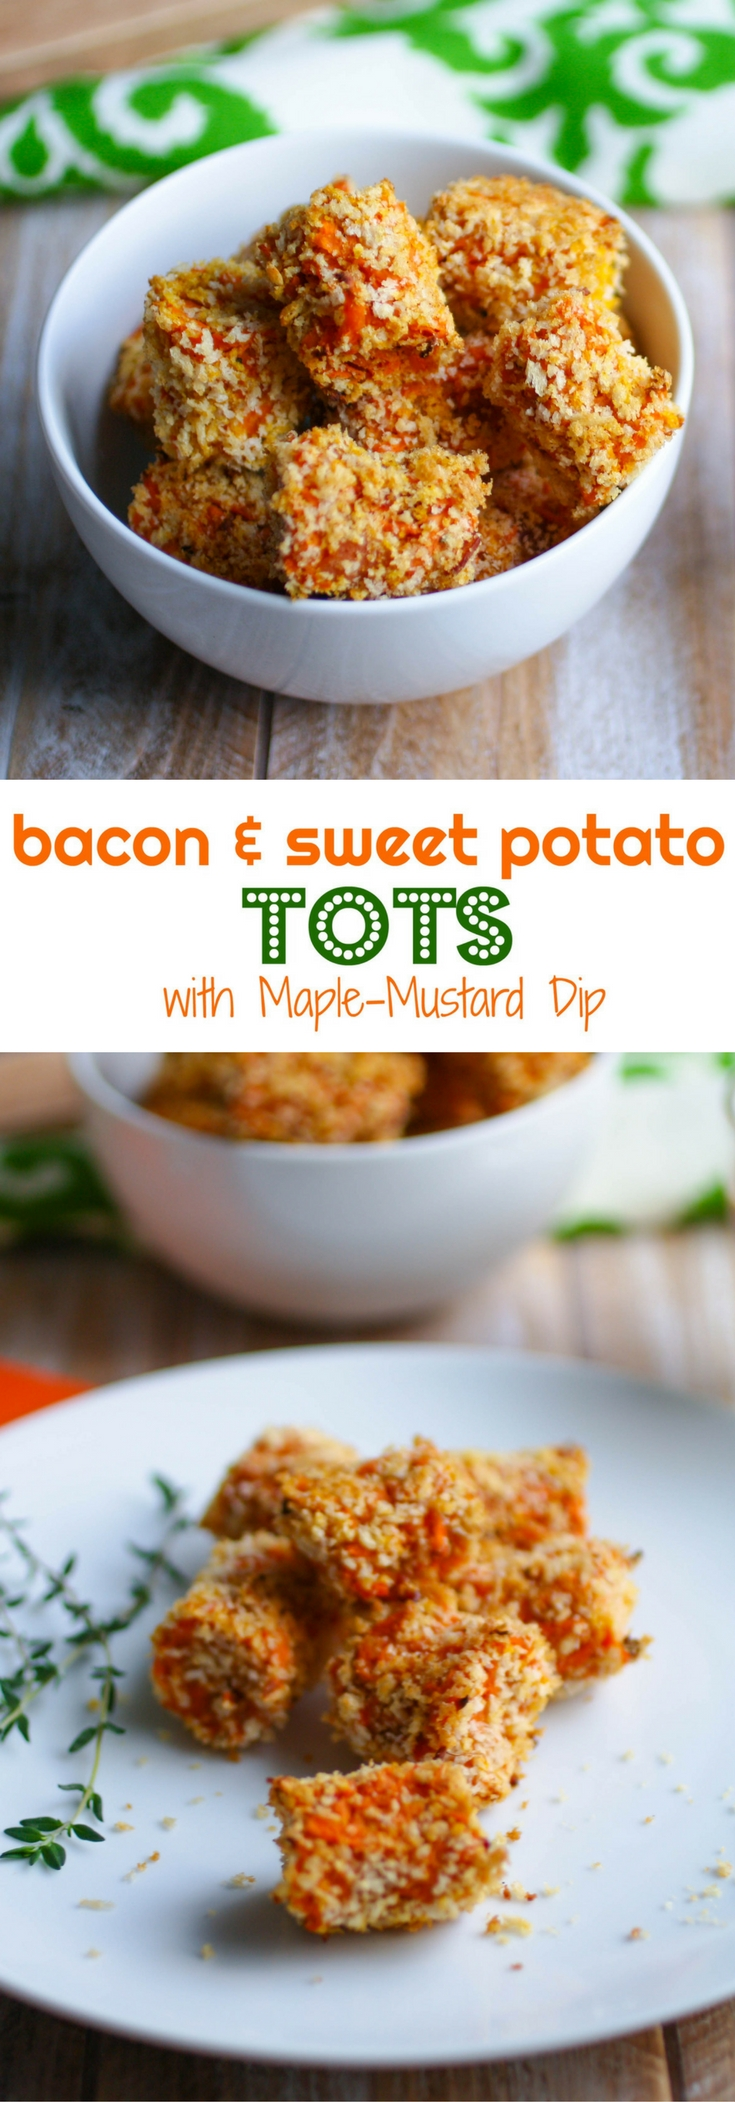 Bacon-Sweet Potato Tots with Maple Mustard Dip make a wonderful side dish, perfect for Thanksgiving! You'll love these tots as a side dish any night of the week!